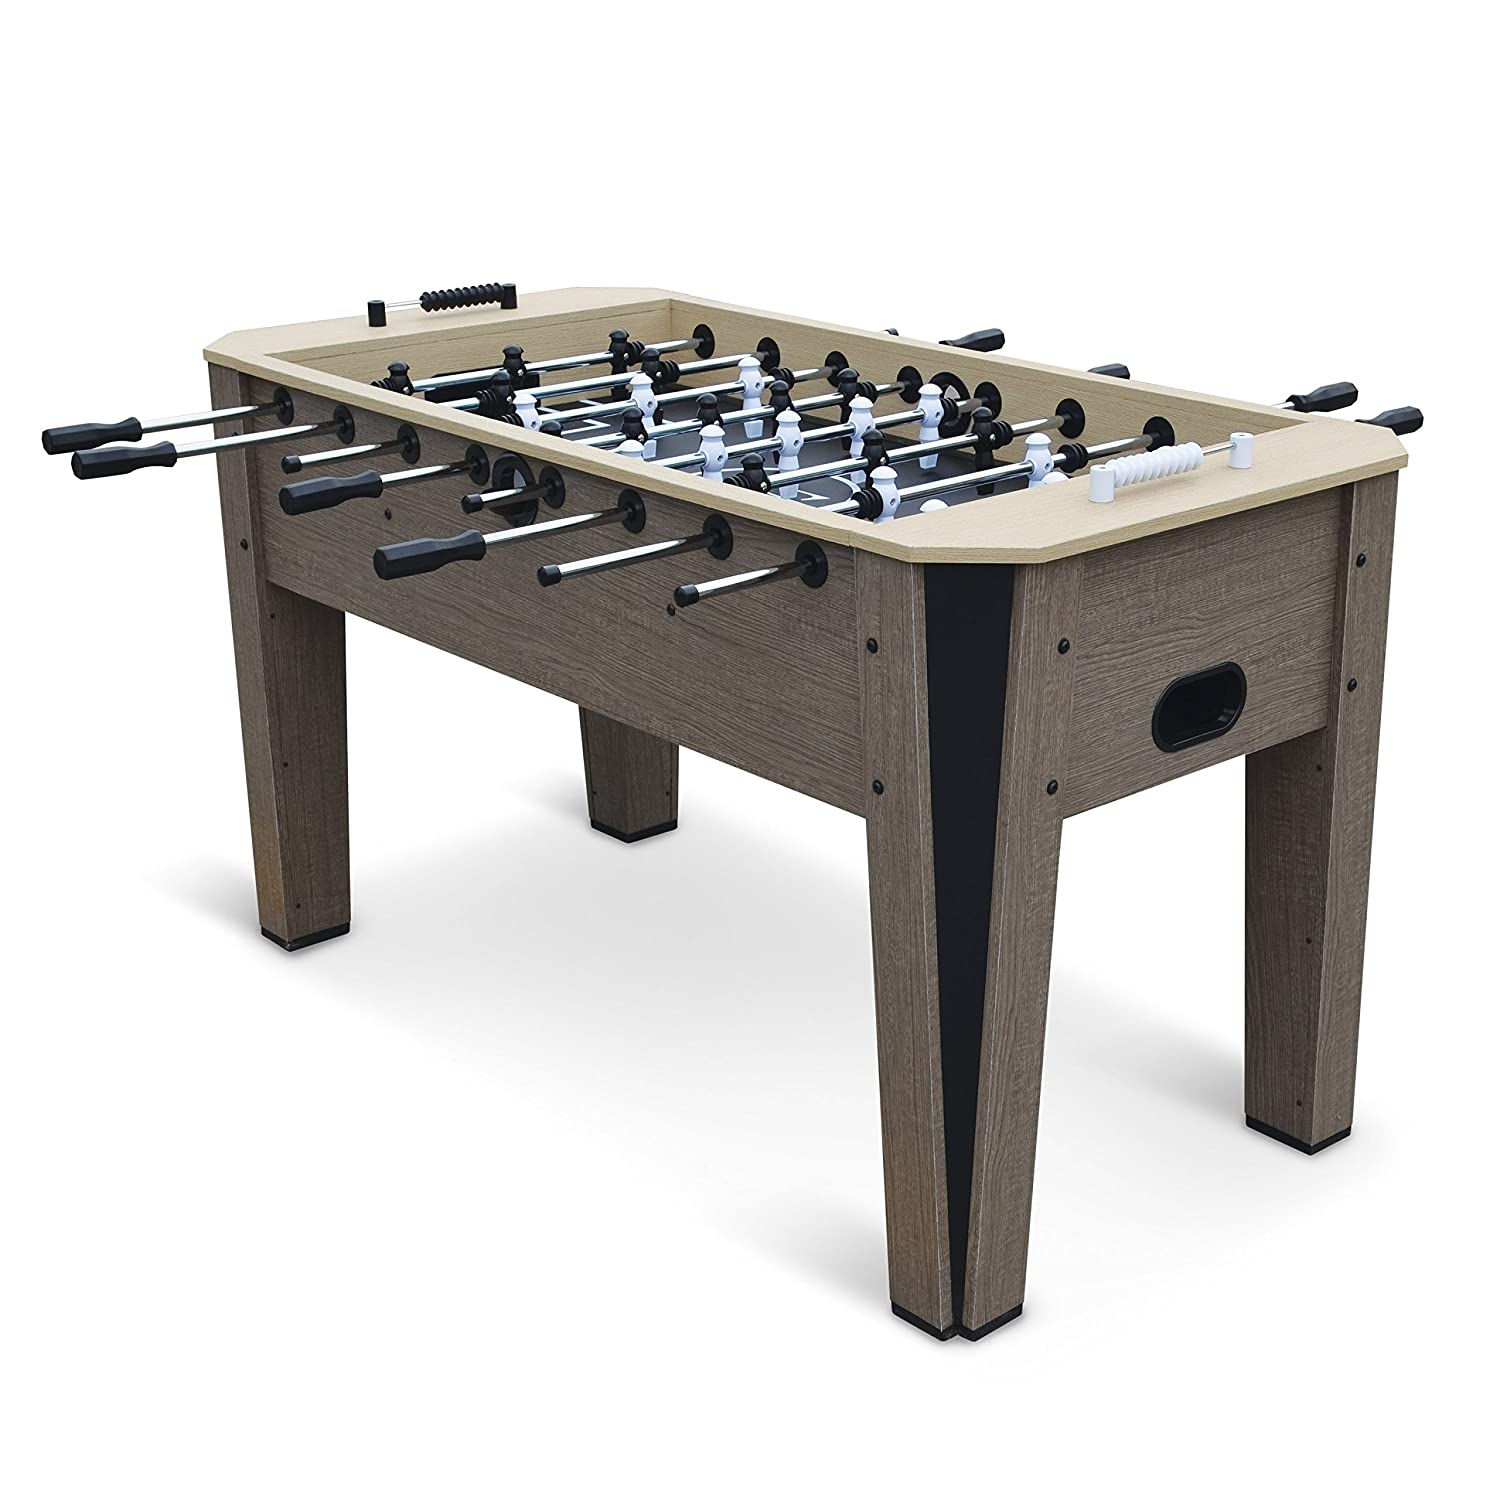 EastPoint Sports Ellington Foosball Table Soccer Game East Point 1-1-35701-DS